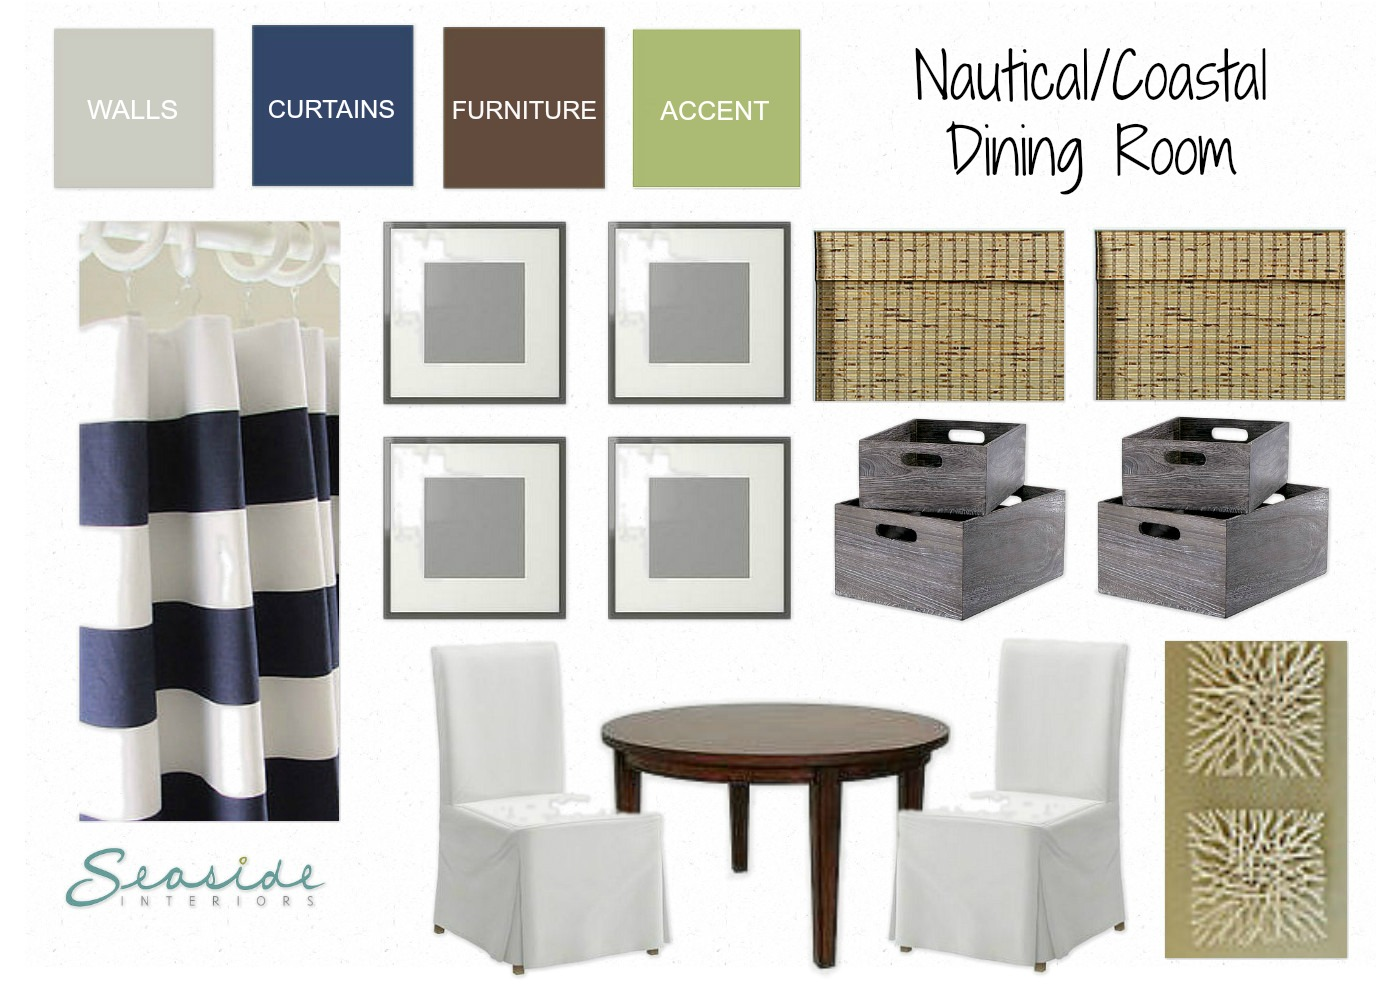 dining room items merlot finish transitional dining room table woptional items nauticalcoastal dining room design - Dining Room Items